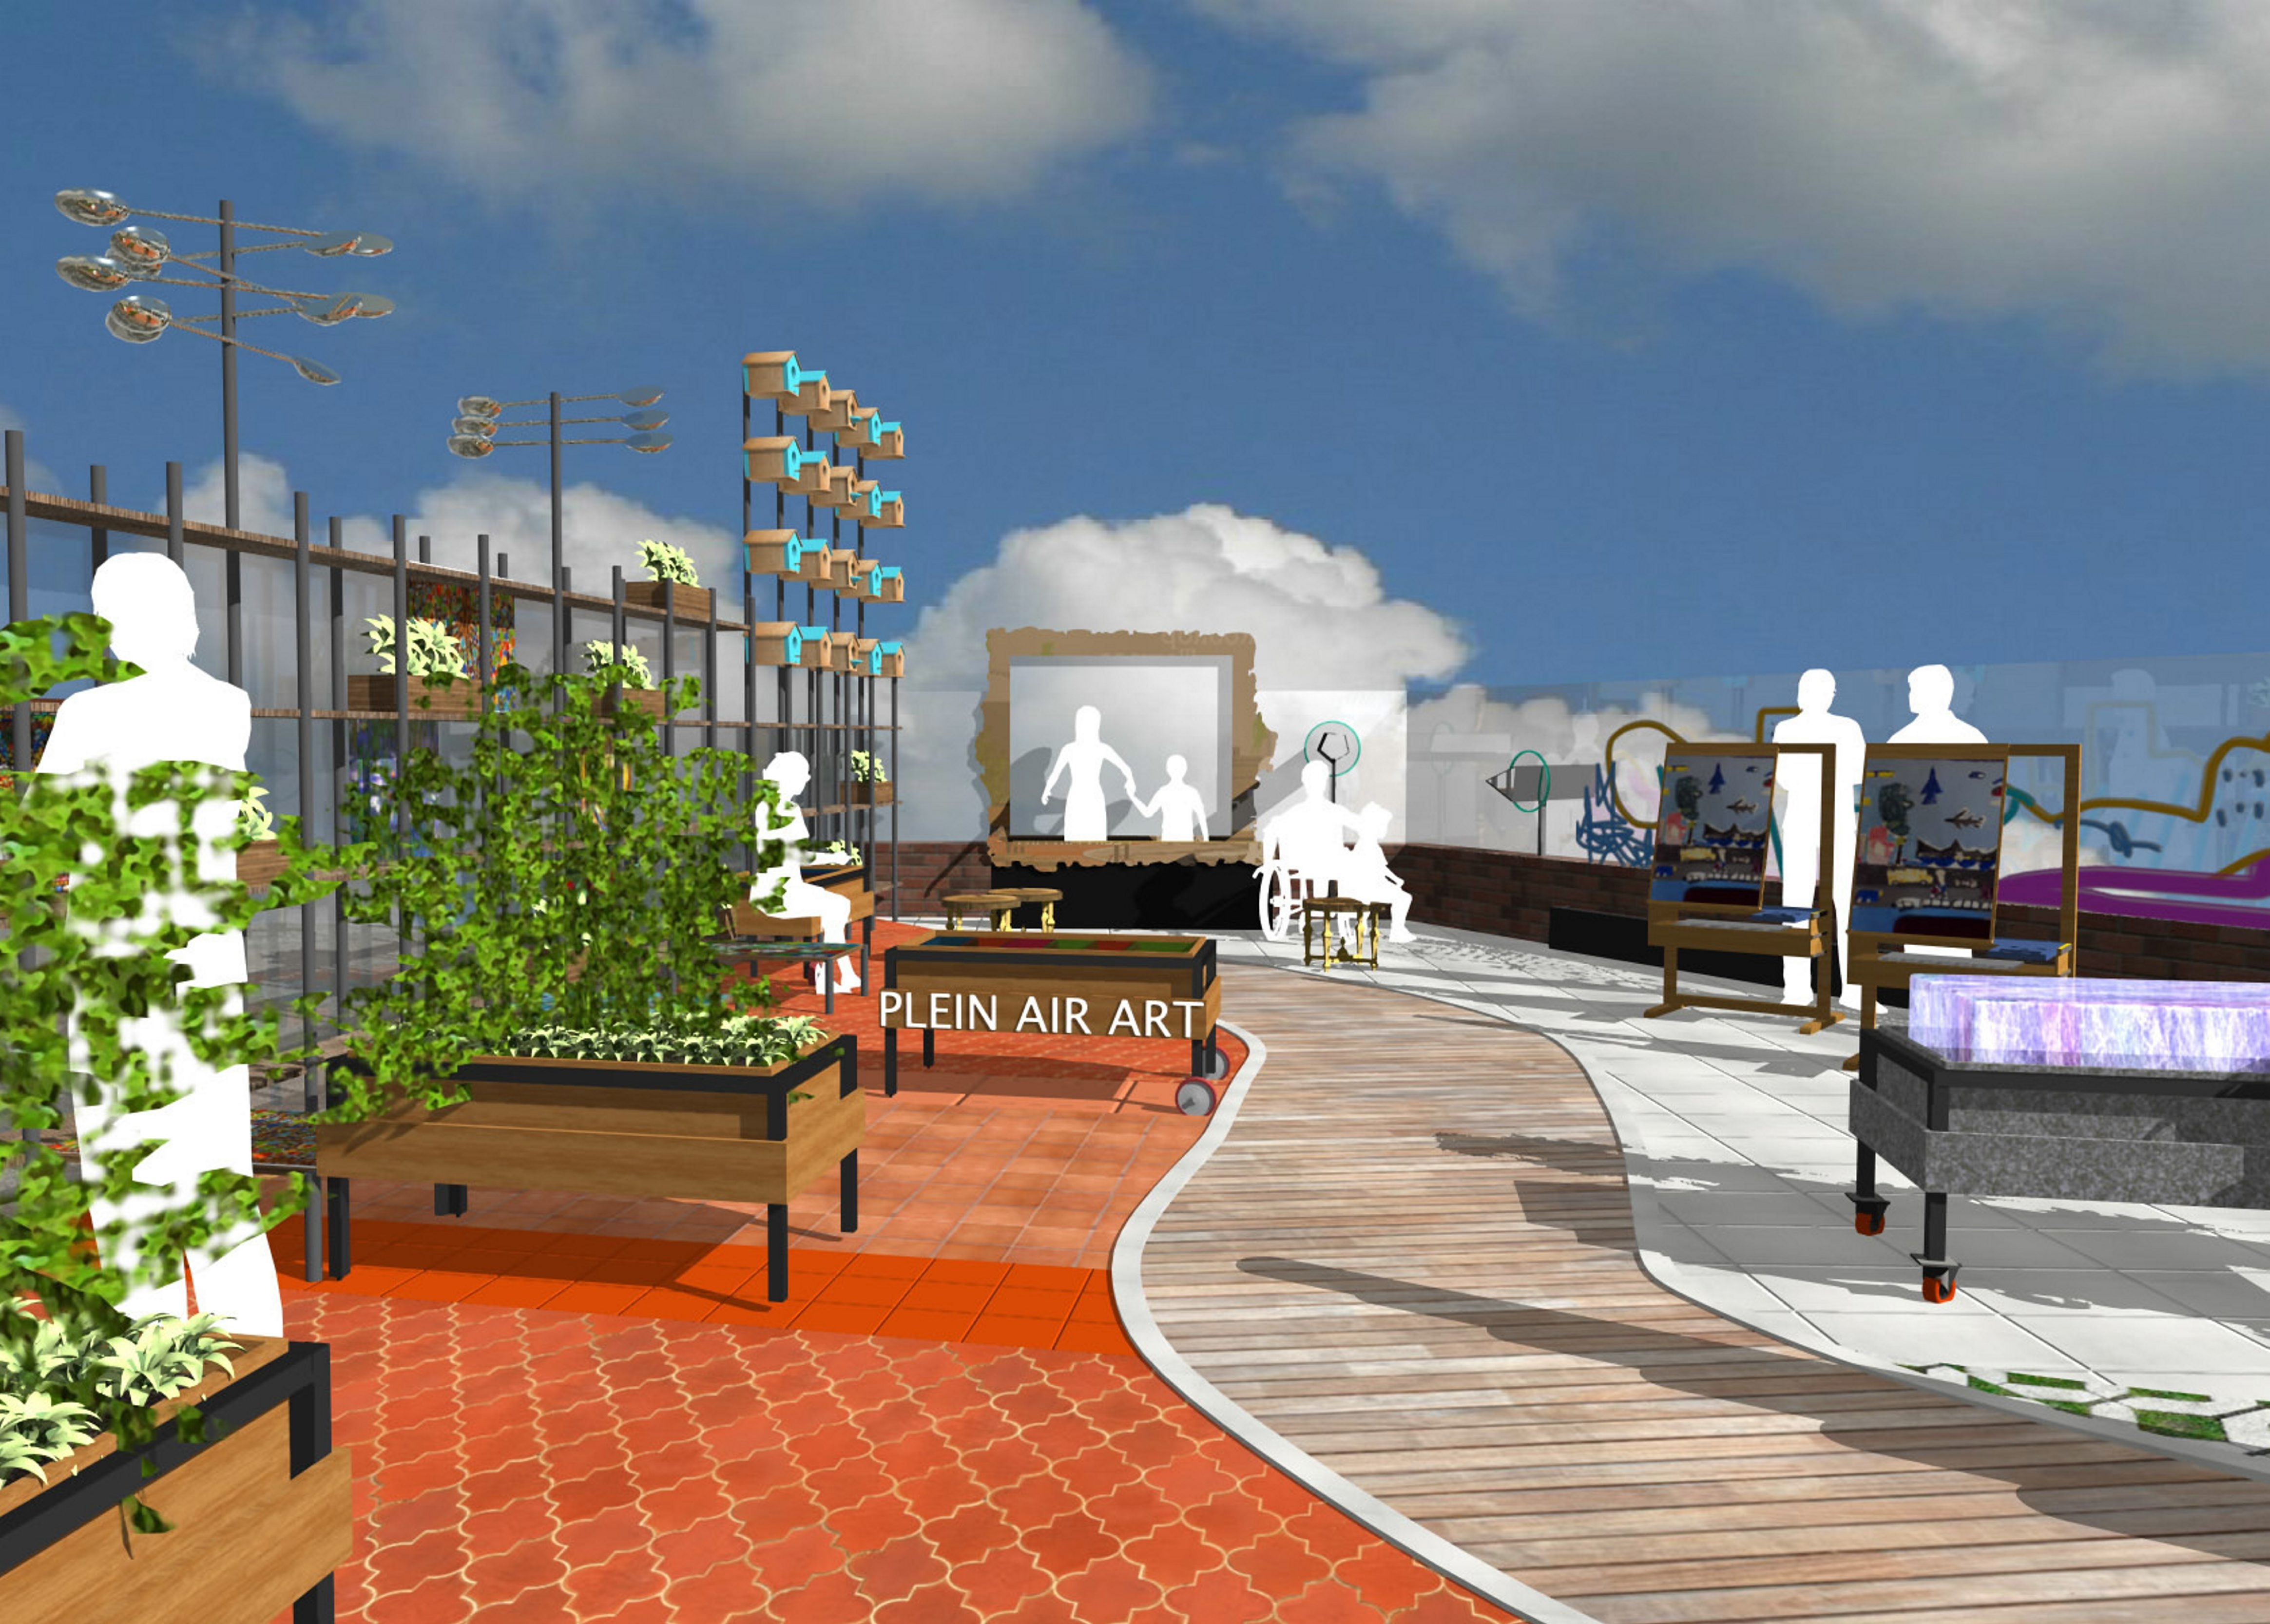 The ambitious plan for a Canalside children's museum included this sketch of a rooftop  space for art and gardening activities.